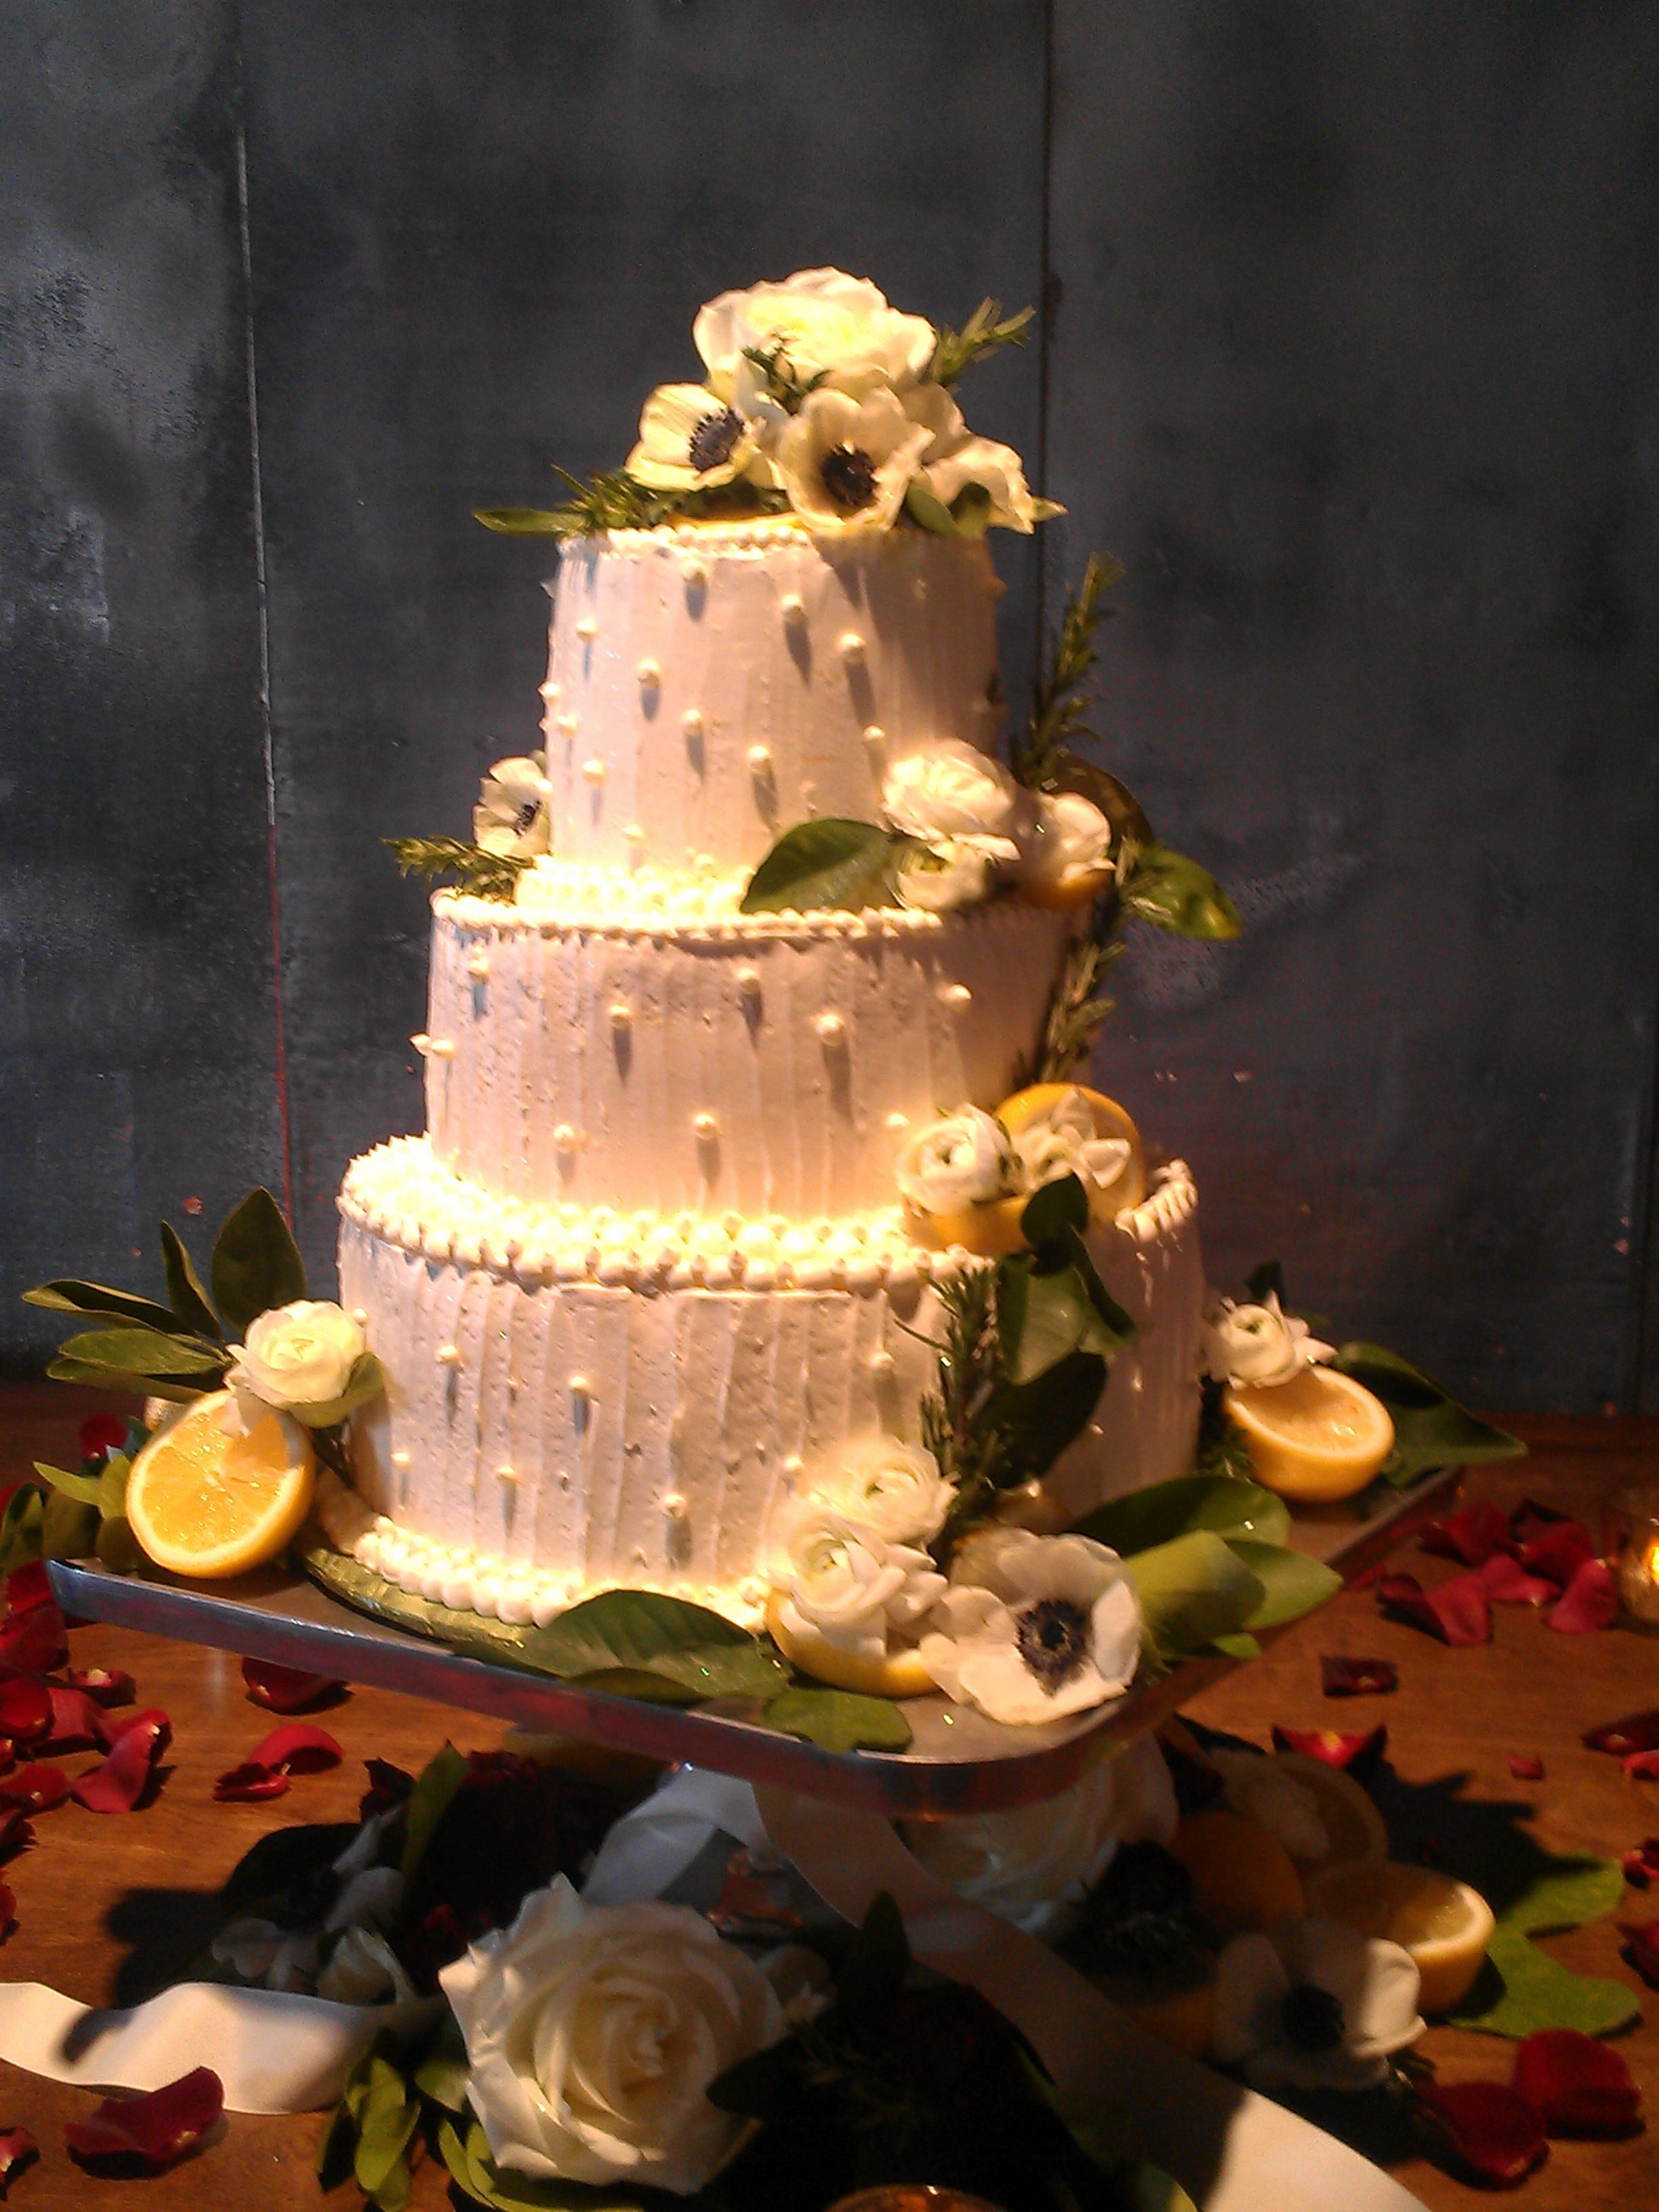 A Wedding Cake By Tracy Dempsey Originals.